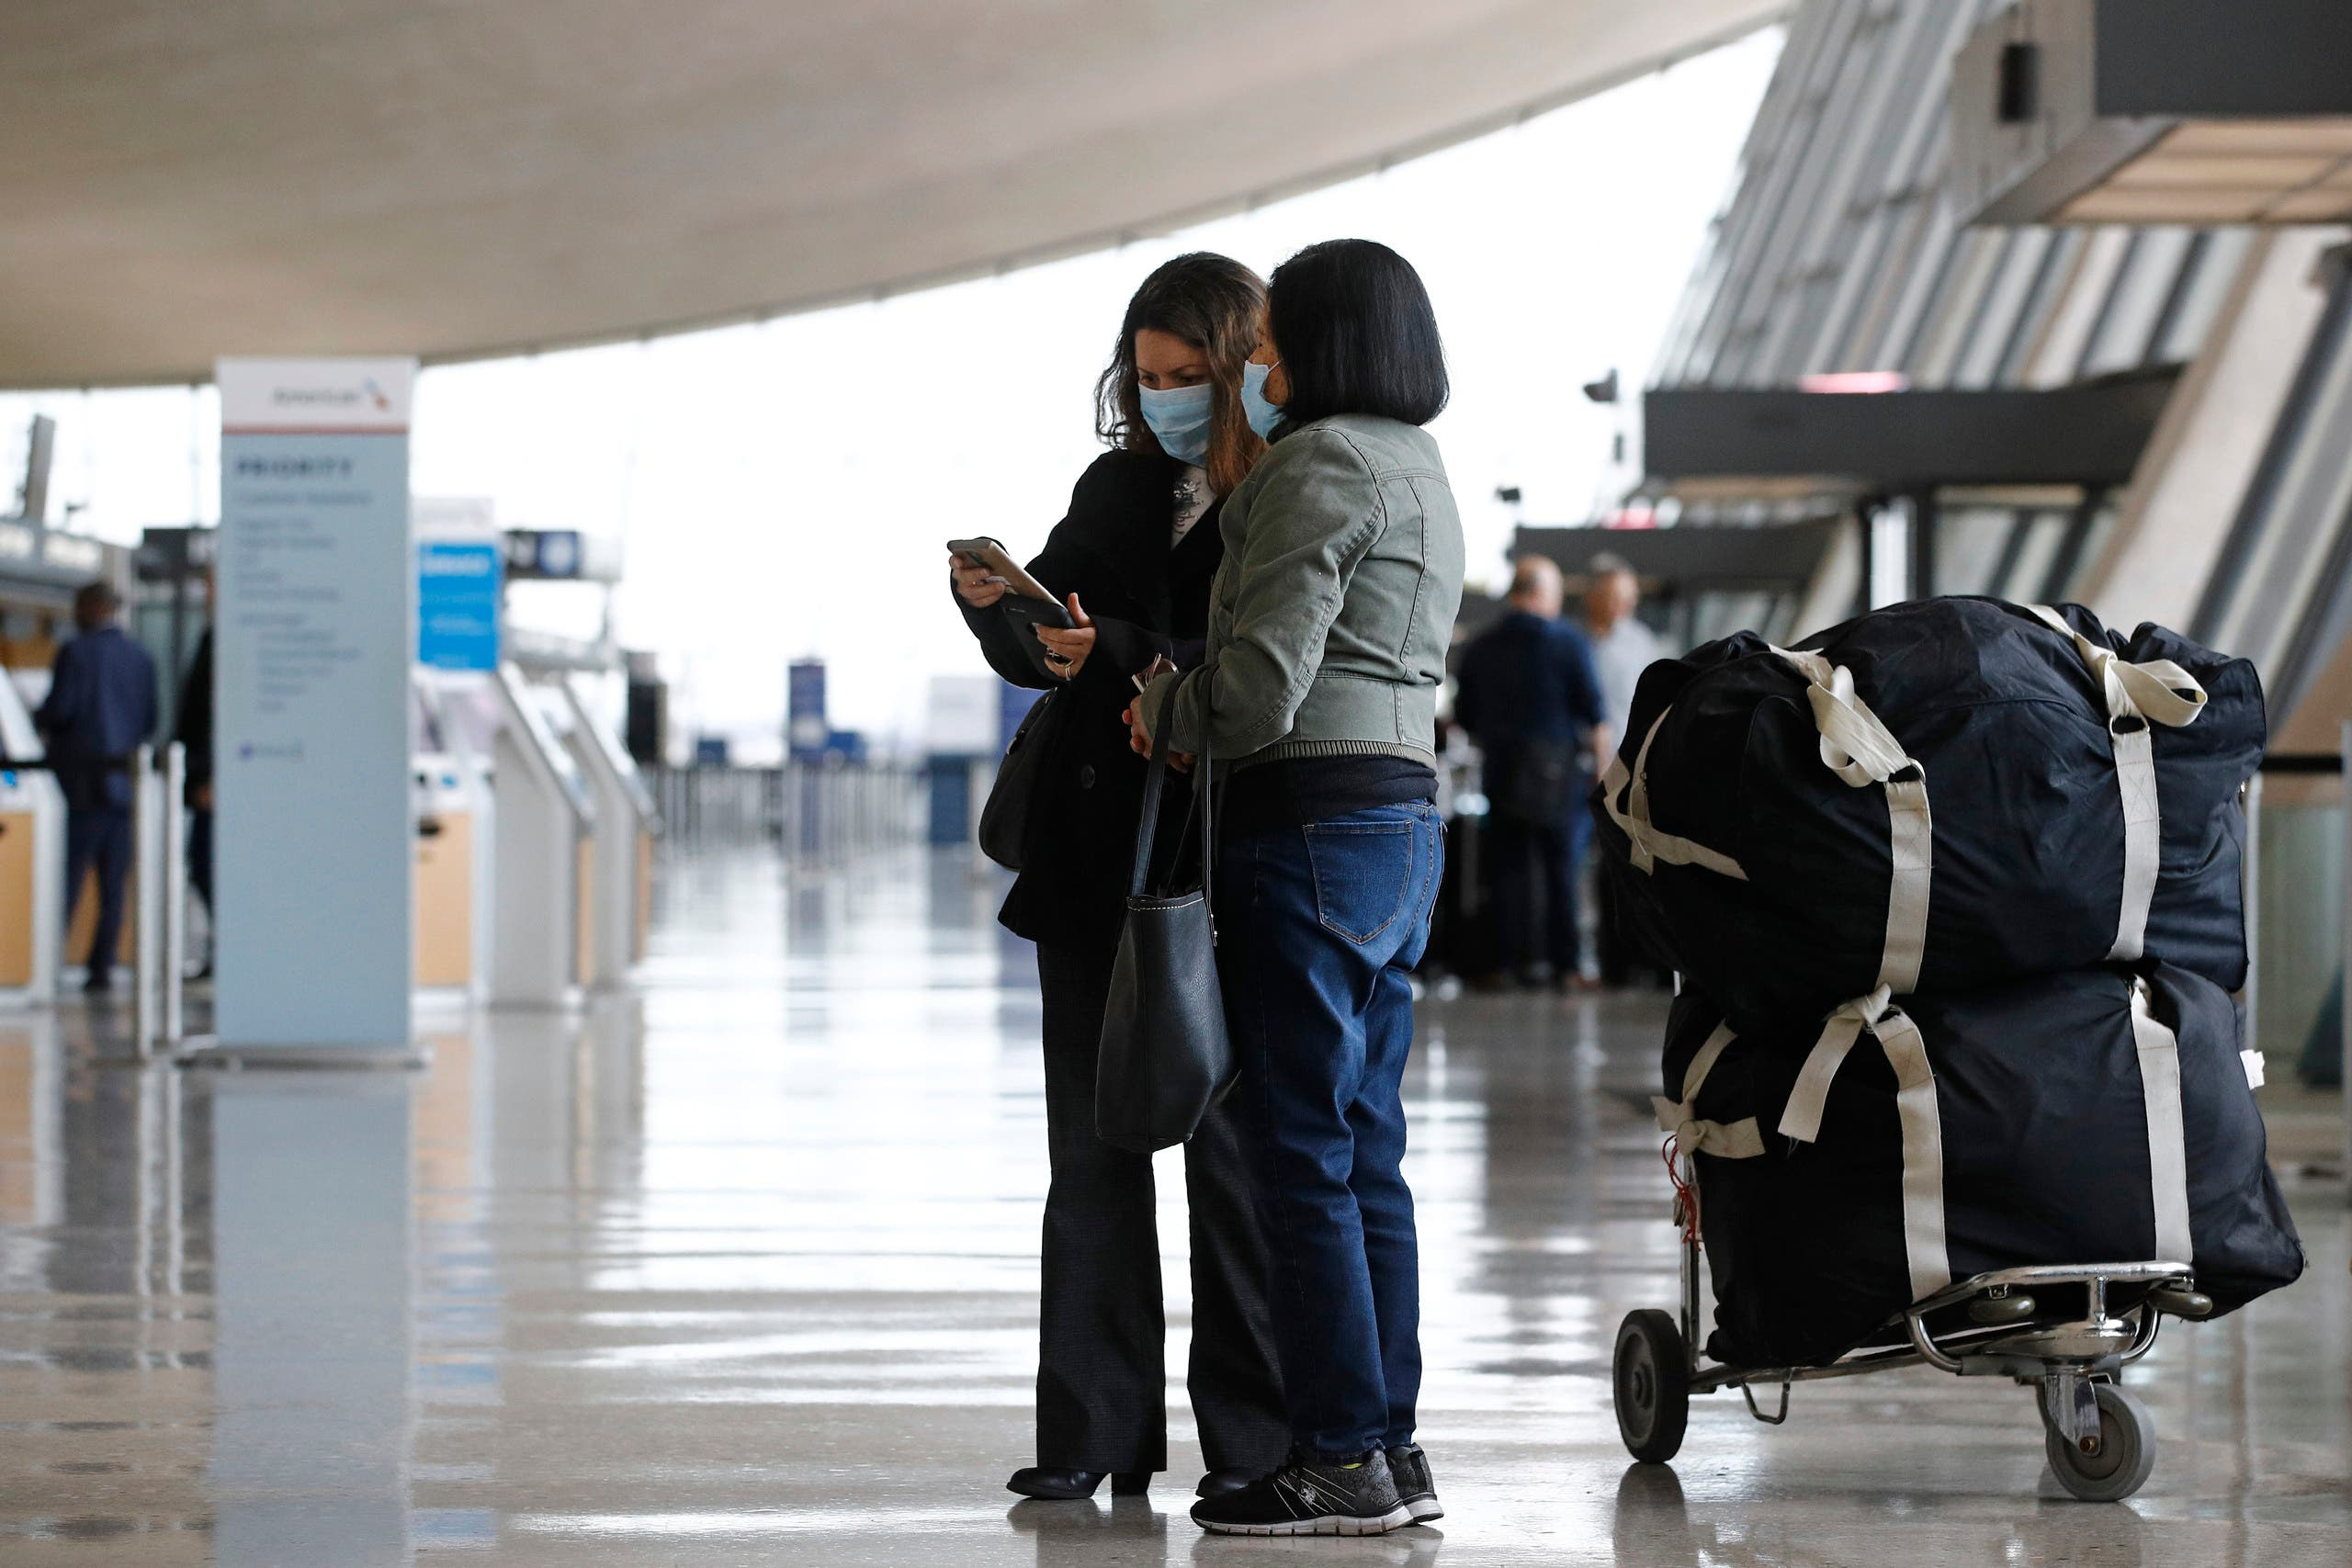 Travelers wear face masks as they prepare to check in for a flight at Dulles International Airport in Dulles, Va., Tuesday, March 17, 2020. (AP)